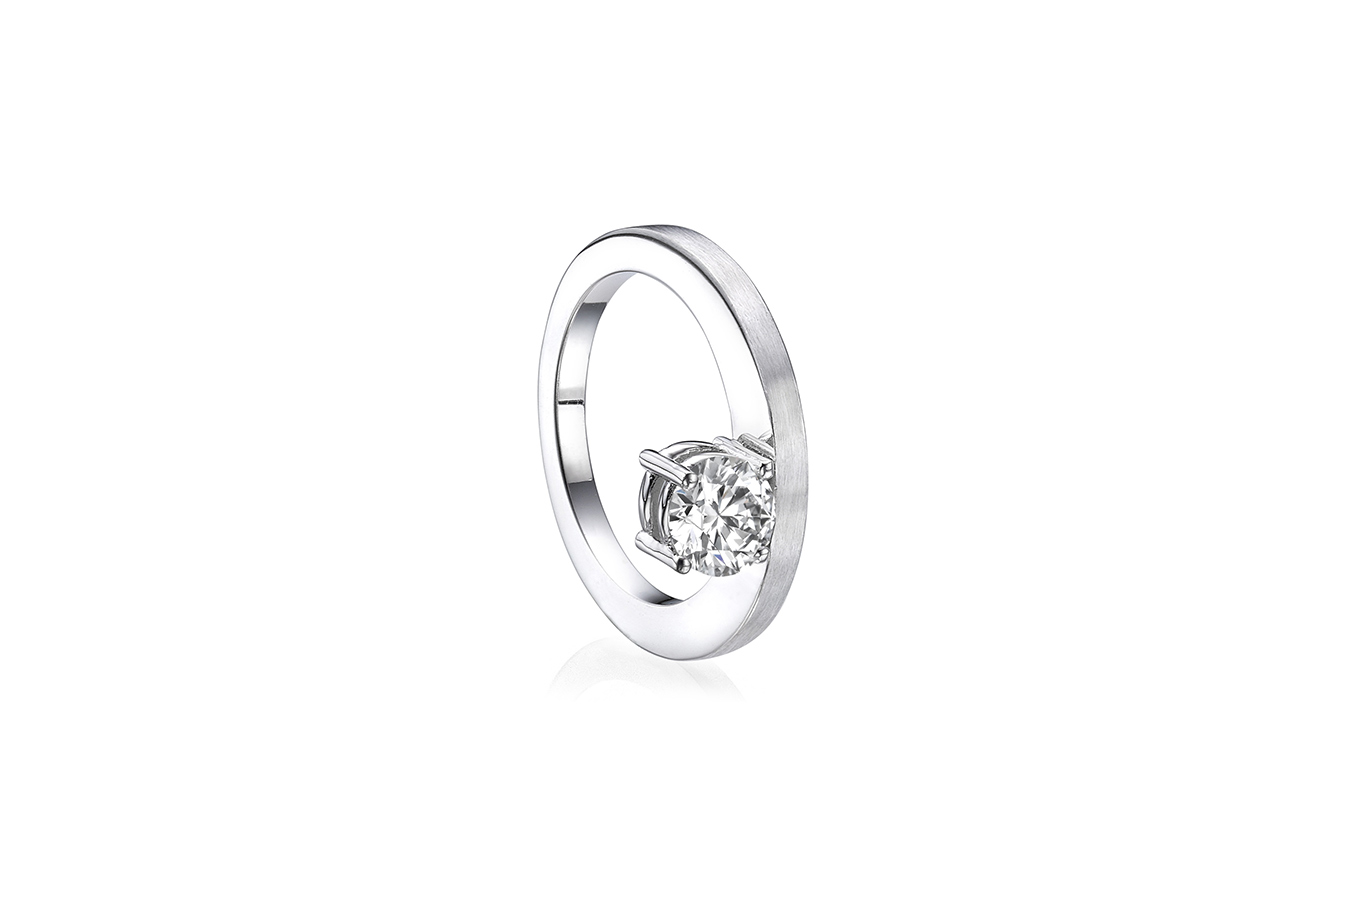 ANOTHER RING 18K WHITE GOLD 0.70 CT DIAMOND